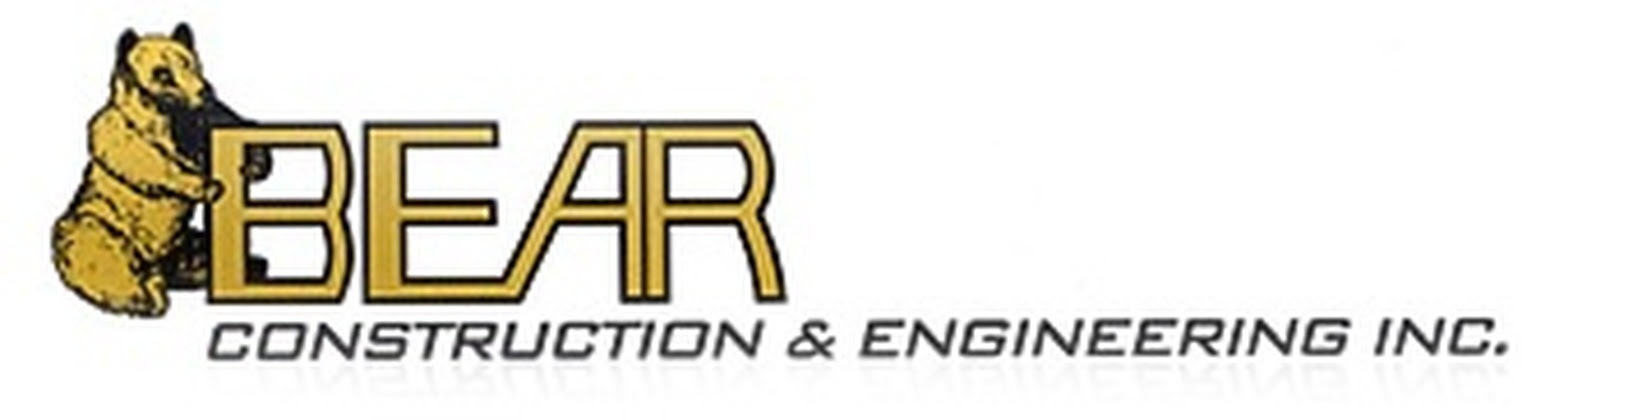 View The Roster Windsor Construction Association On